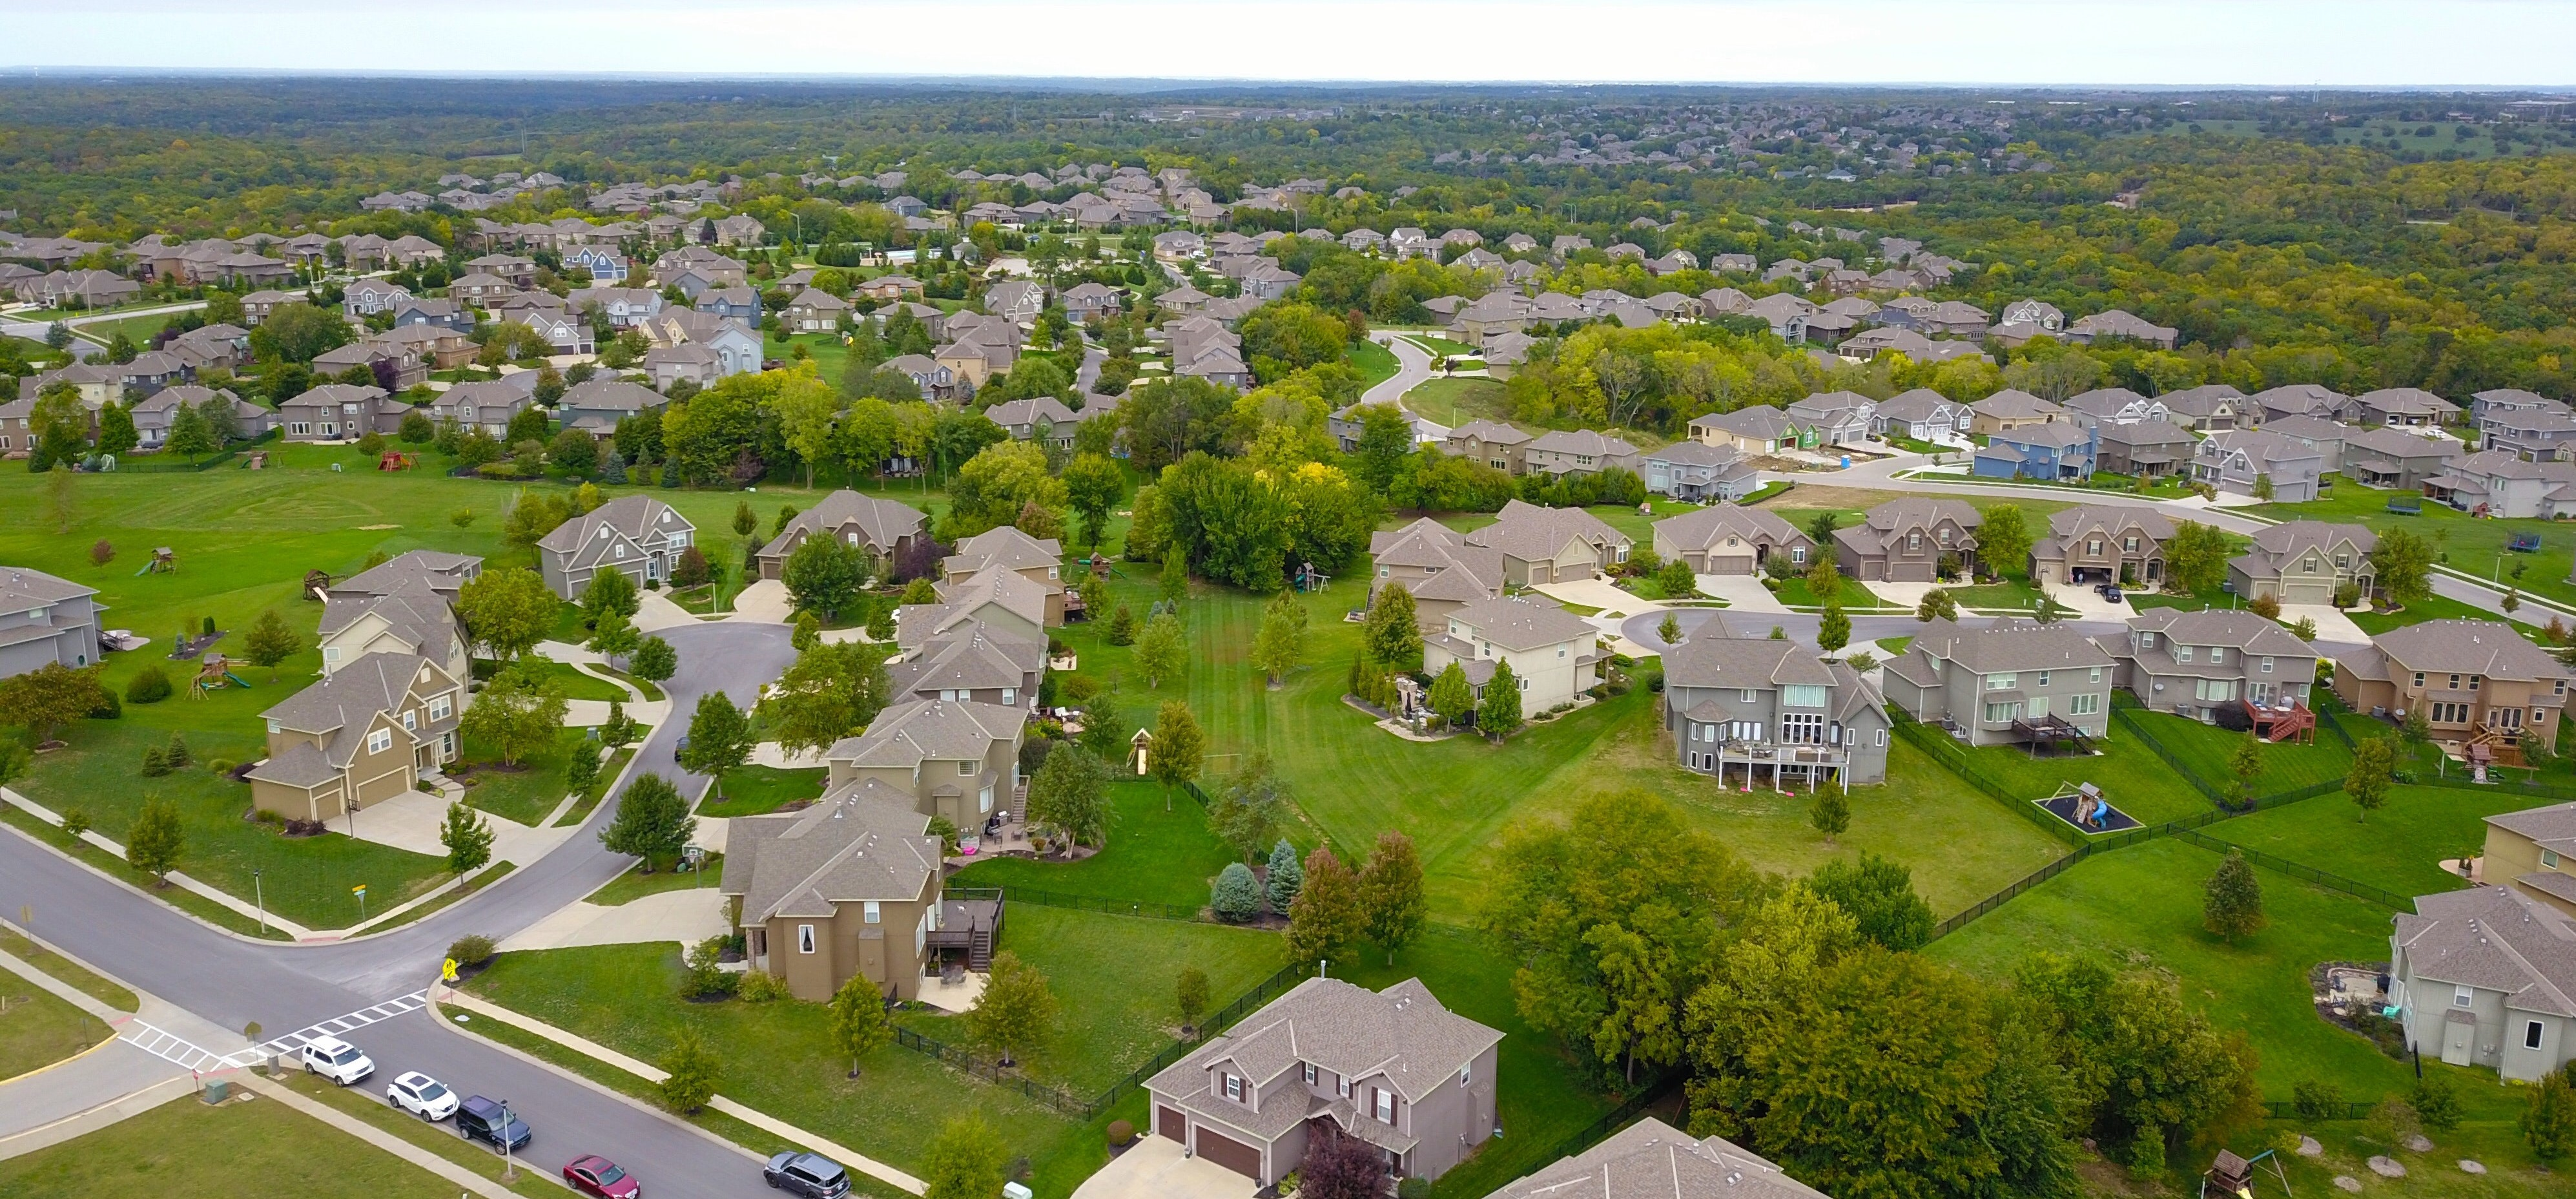 aerial picture of community homes in rural new york